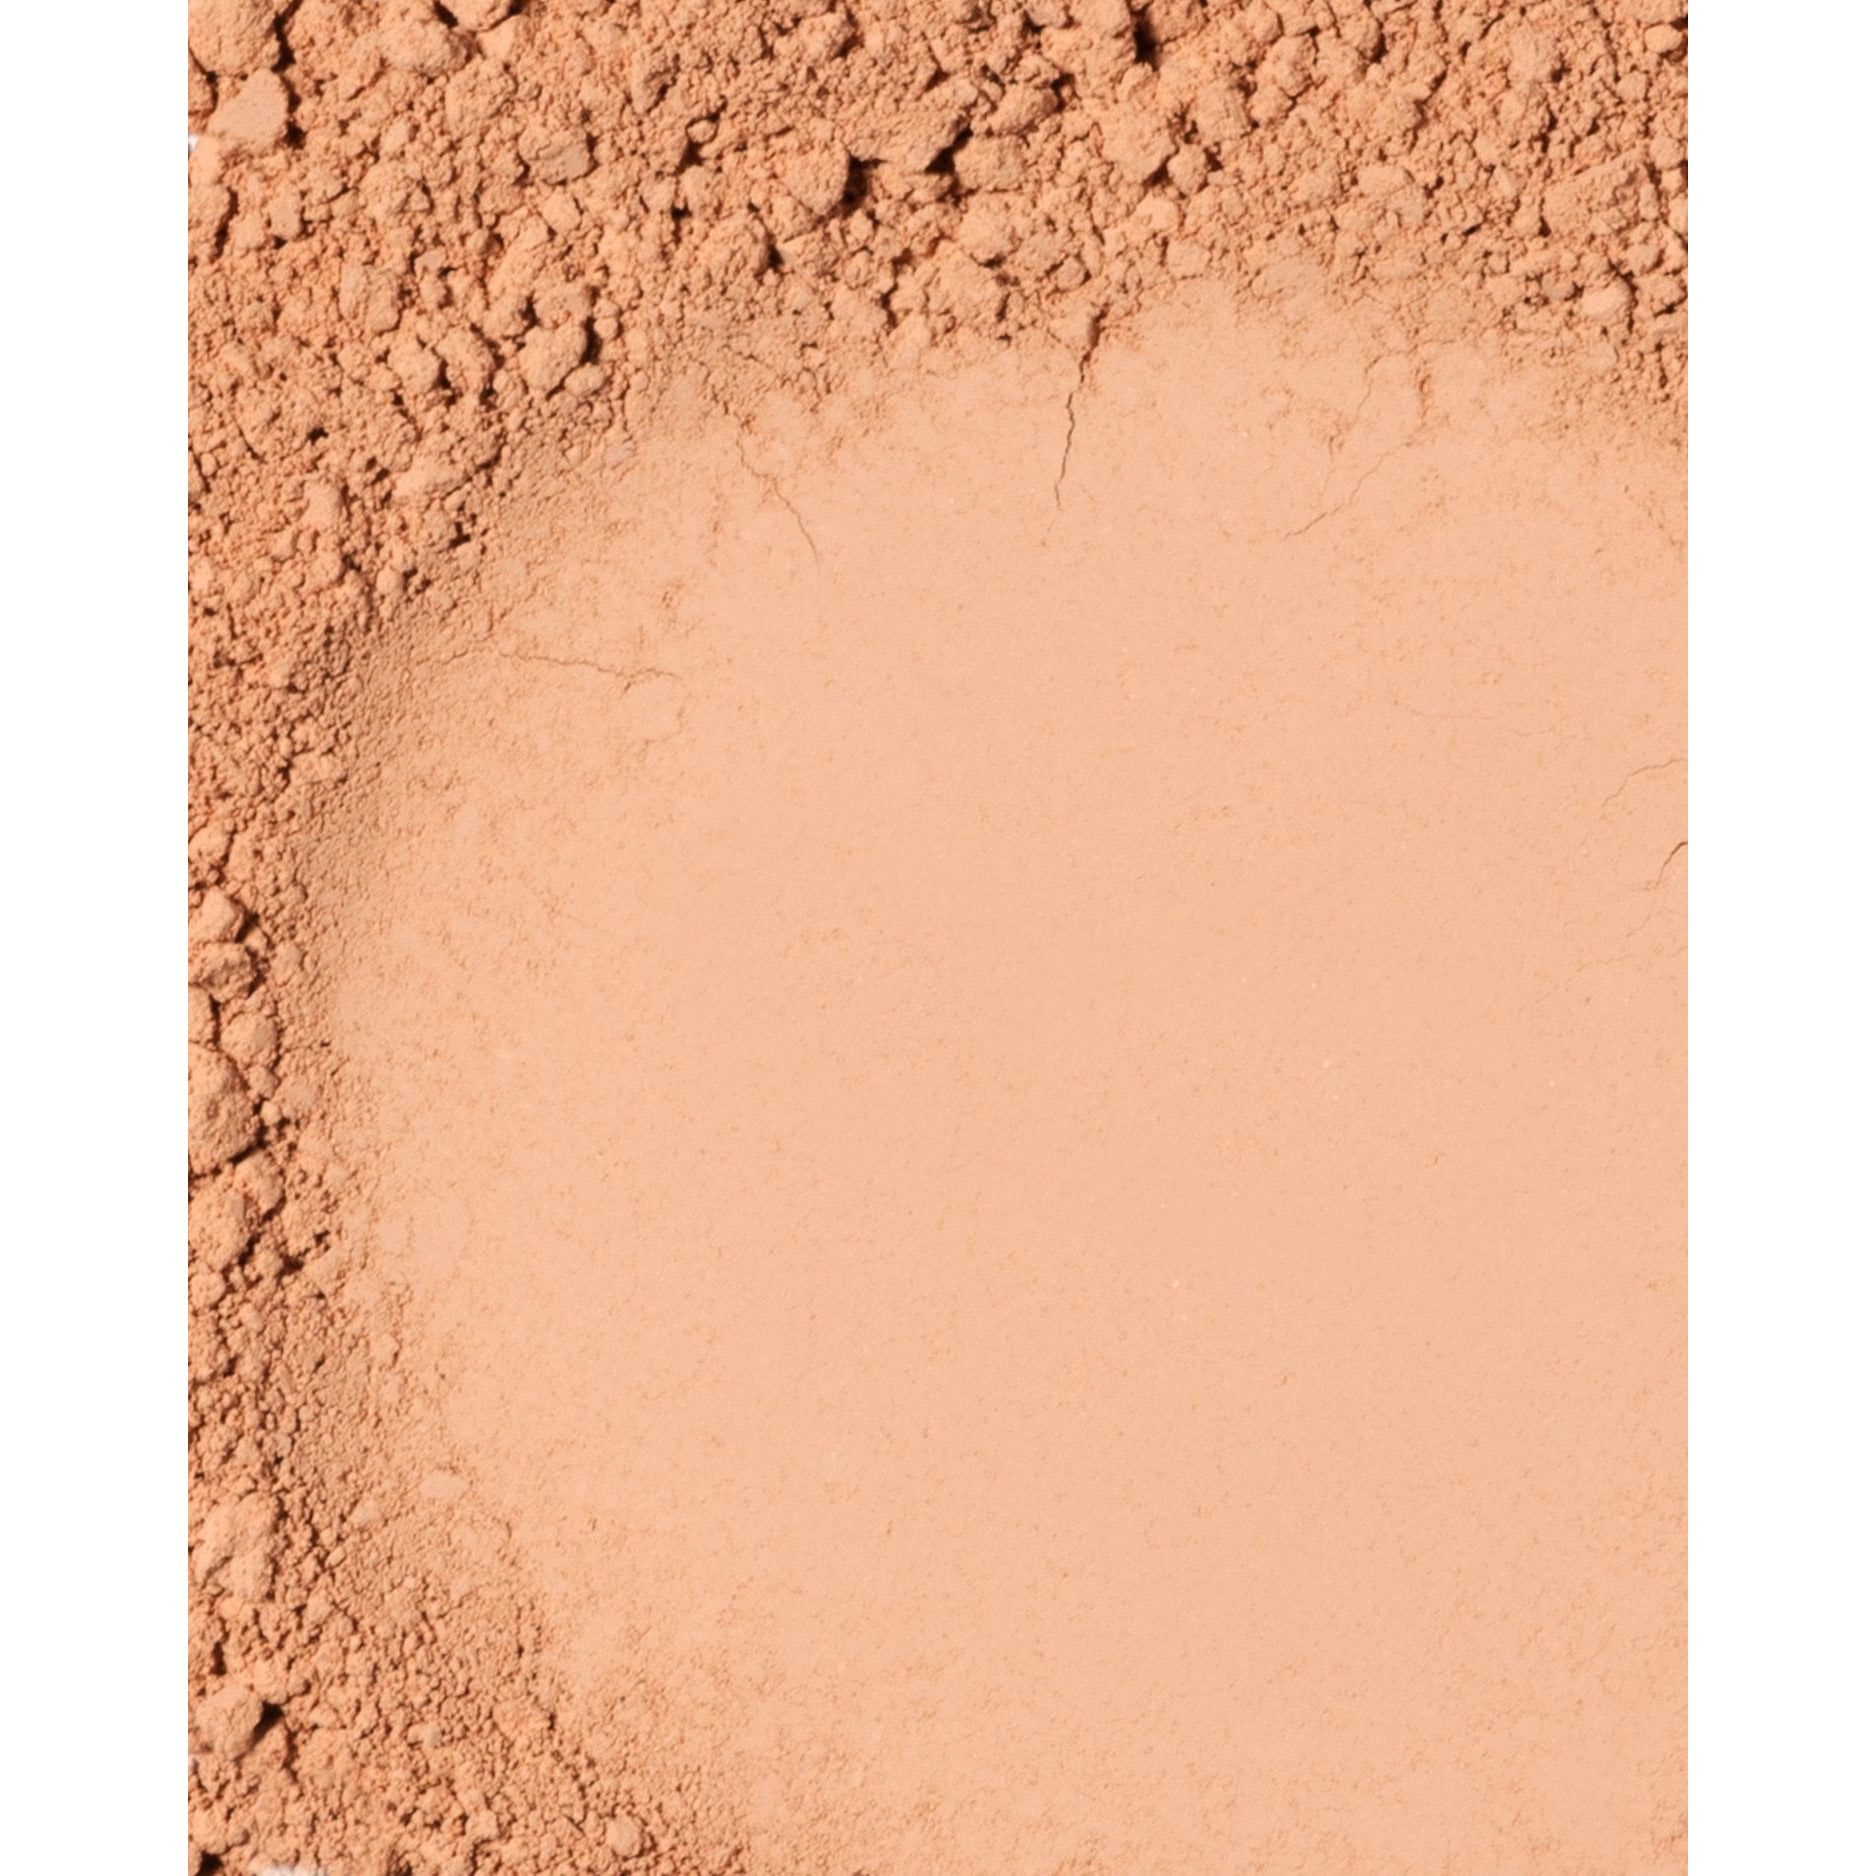 Fun - Omiana Loose Powder Mineral Foundation No Titanium Dioxide and No Mica